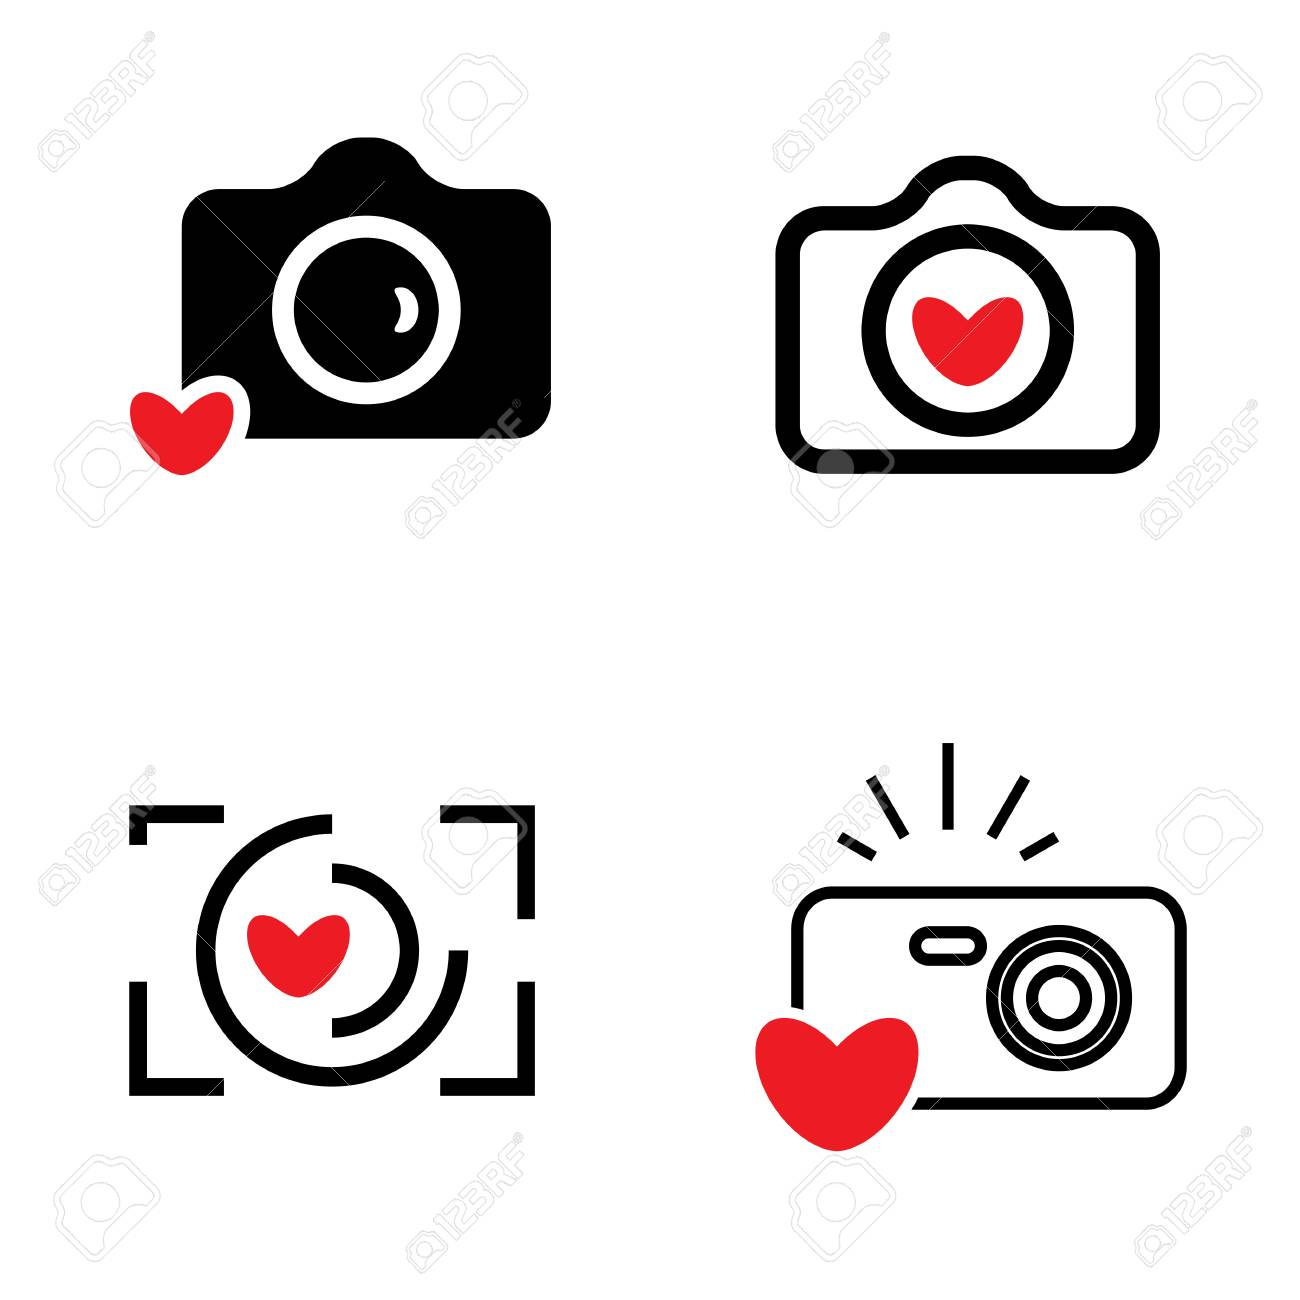 hight resolution of digital camera and heart icons isolated snapshot photography sign or logo instant photo concept